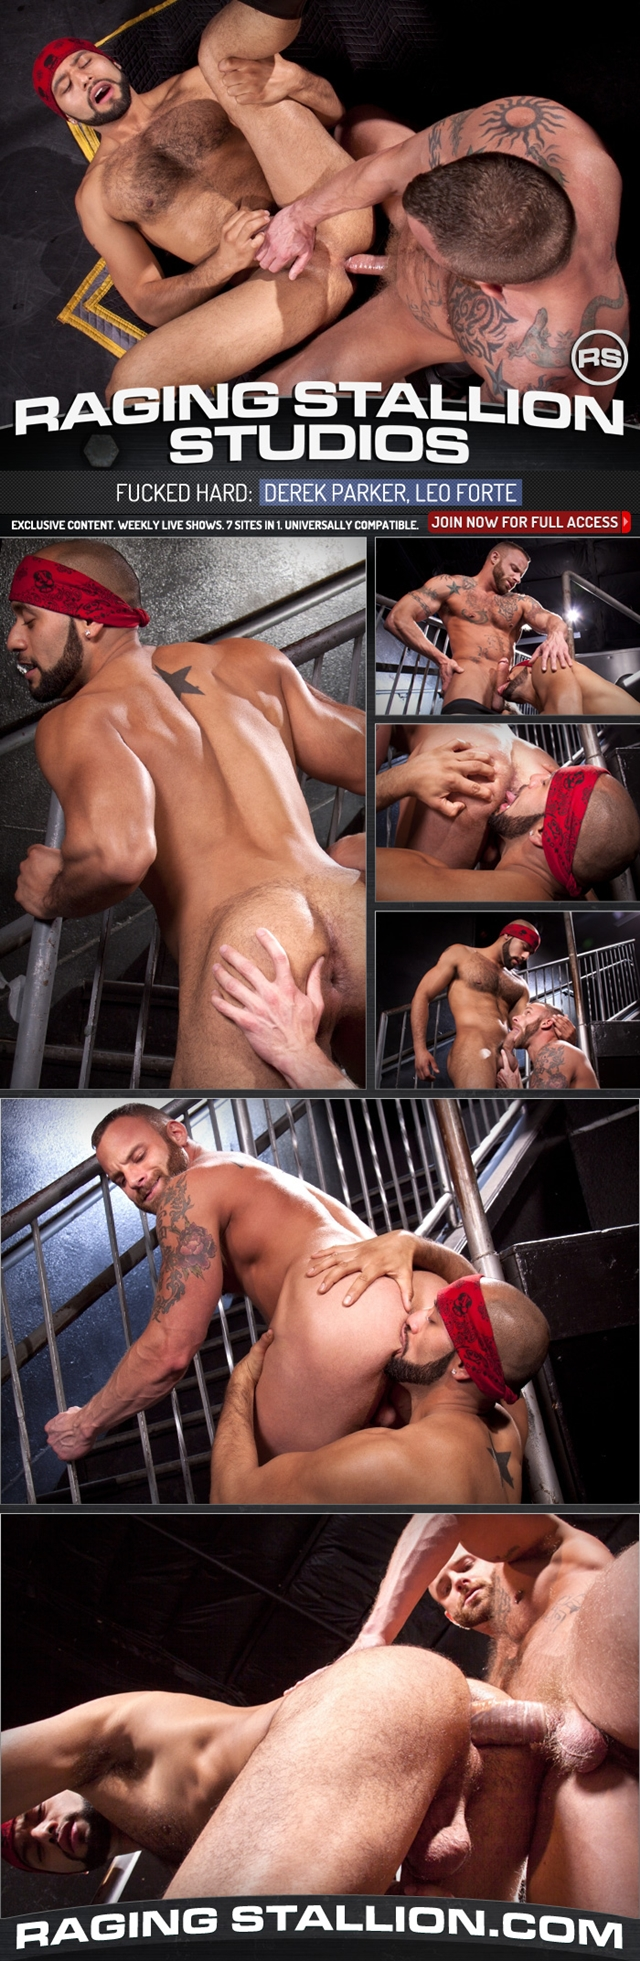 Fucked Hard with Derek Parker and Leo Forte at Raging Stallion